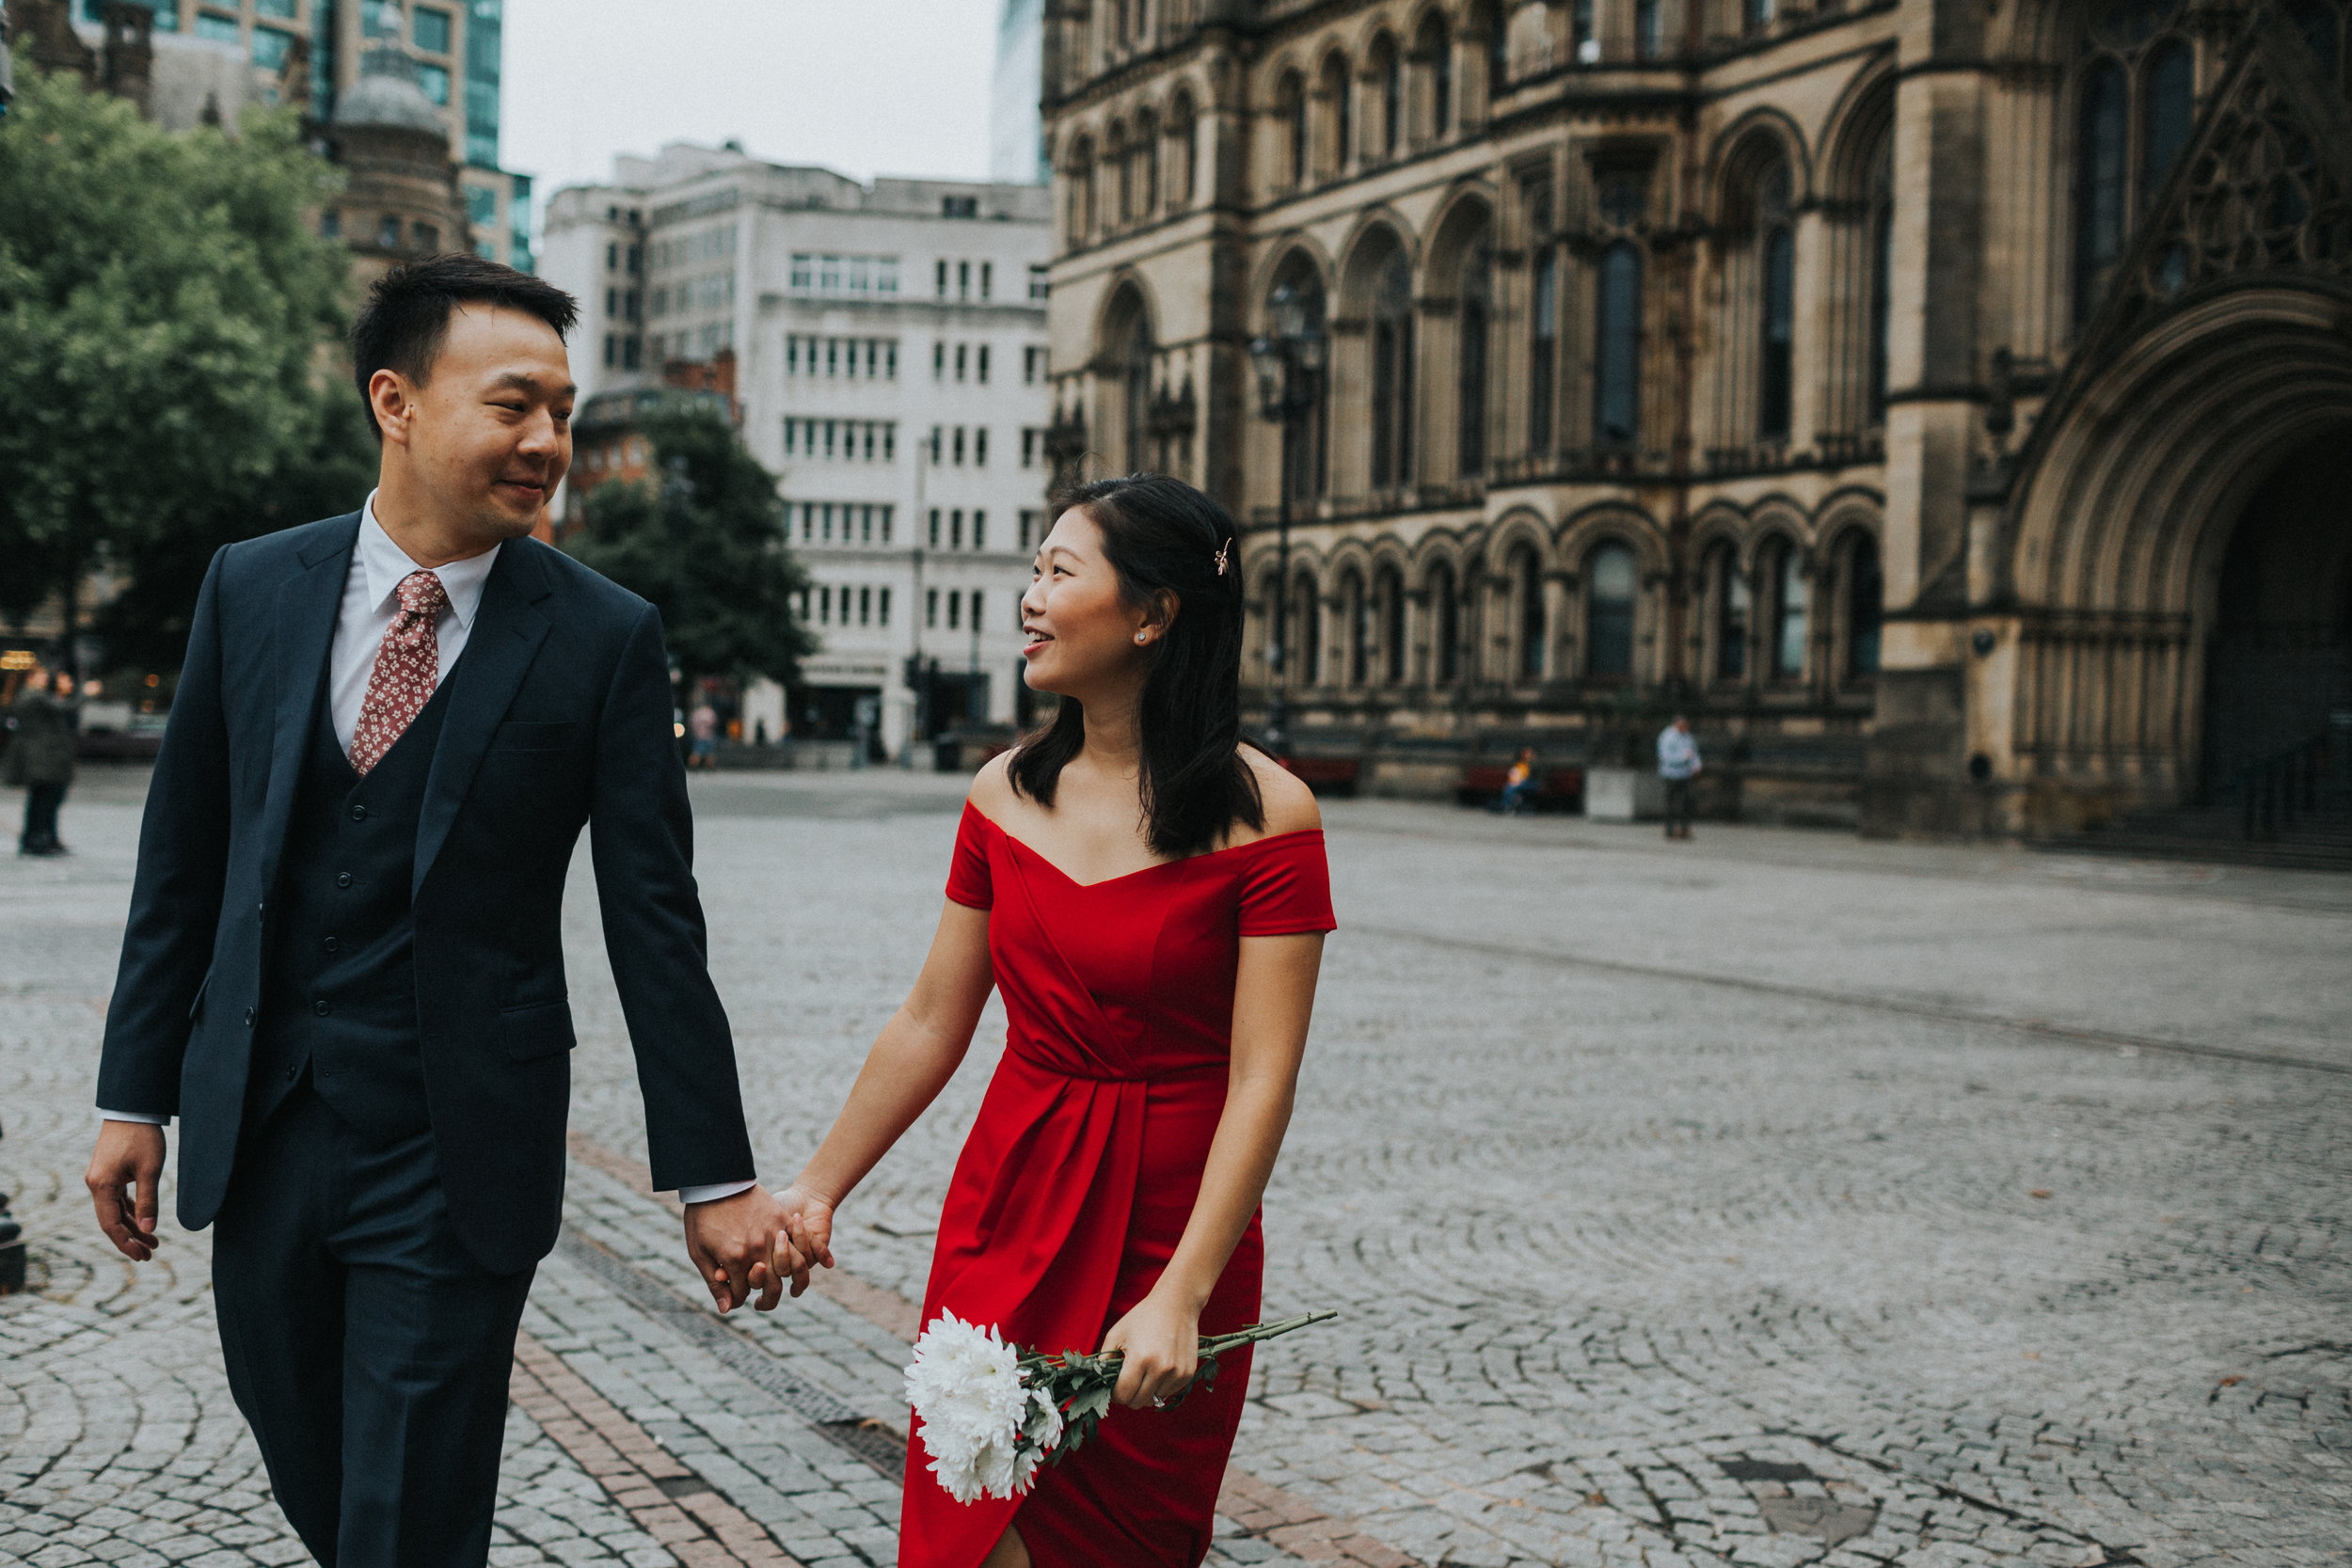 Couple walking together in front of Manchester Town Hall.